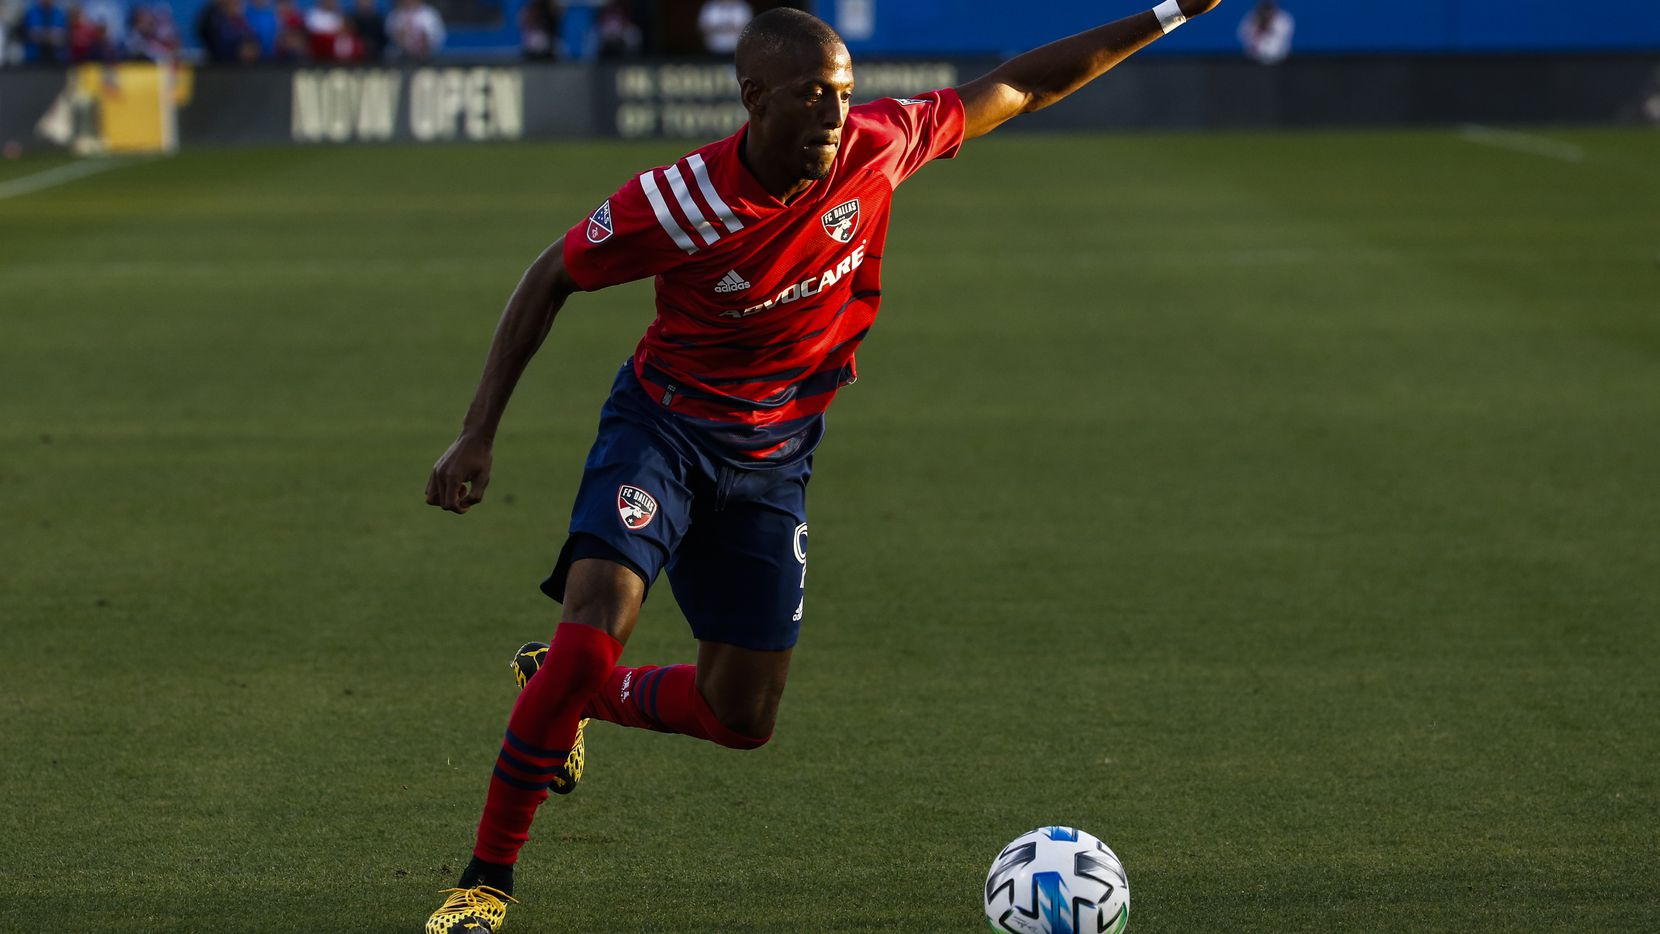 FC Dallas attacker Fafa Picault (9) makes a pass during the first half of an MLS soccer match between FC Dallas and Philadelphia Union on Saturday, Feb. 29, 2020 at Toyota Stadium in Frisco, Texas.